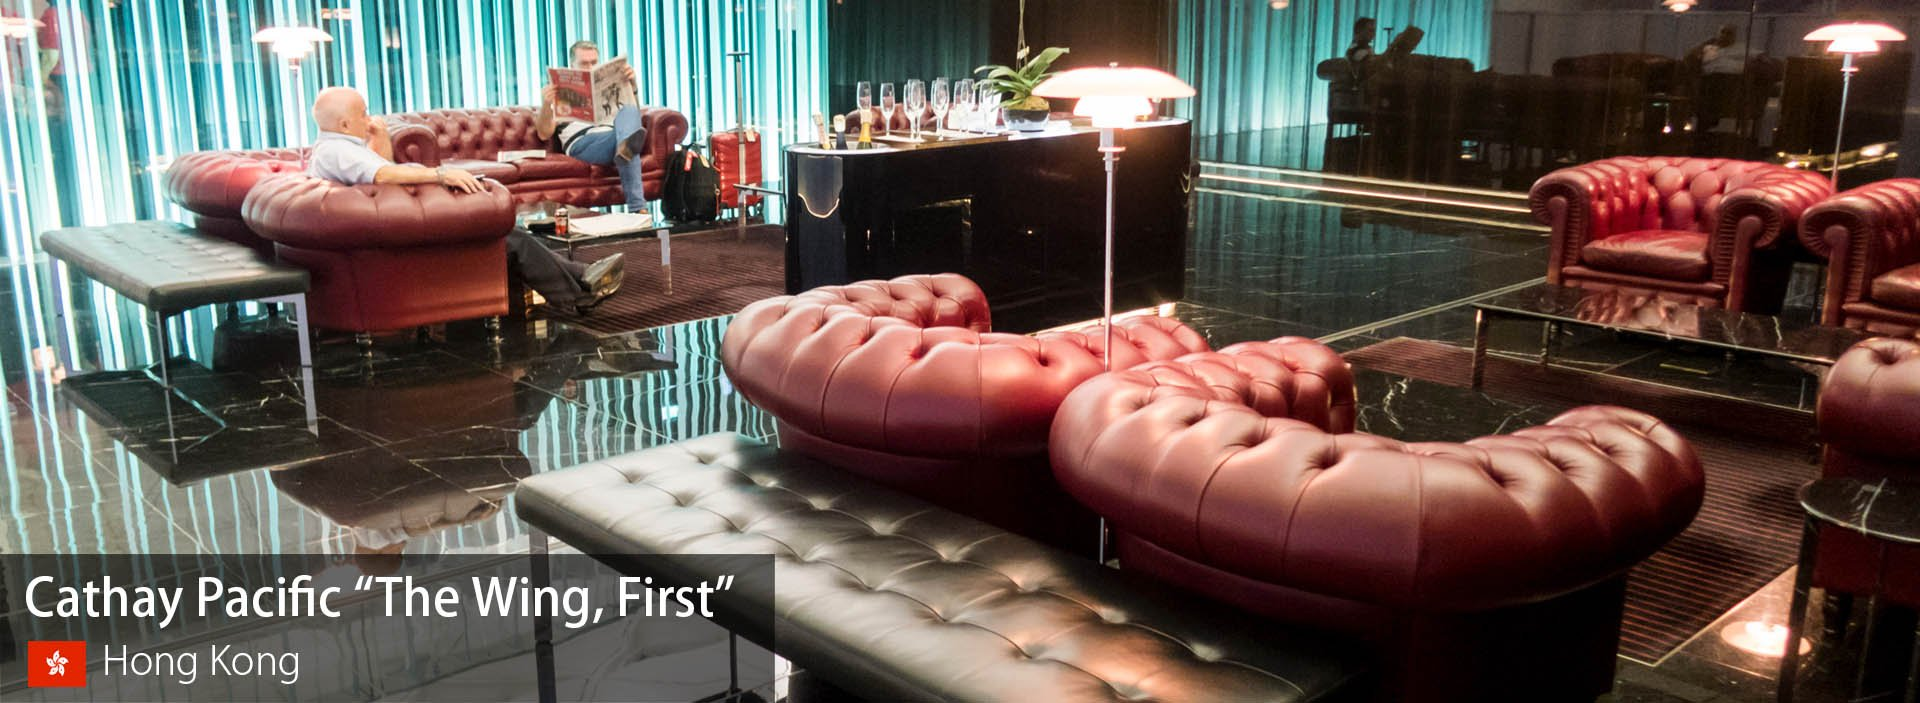 """Lounge Review: Cathay Pacific """"The Wing, First"""" at Hong Kong International"""